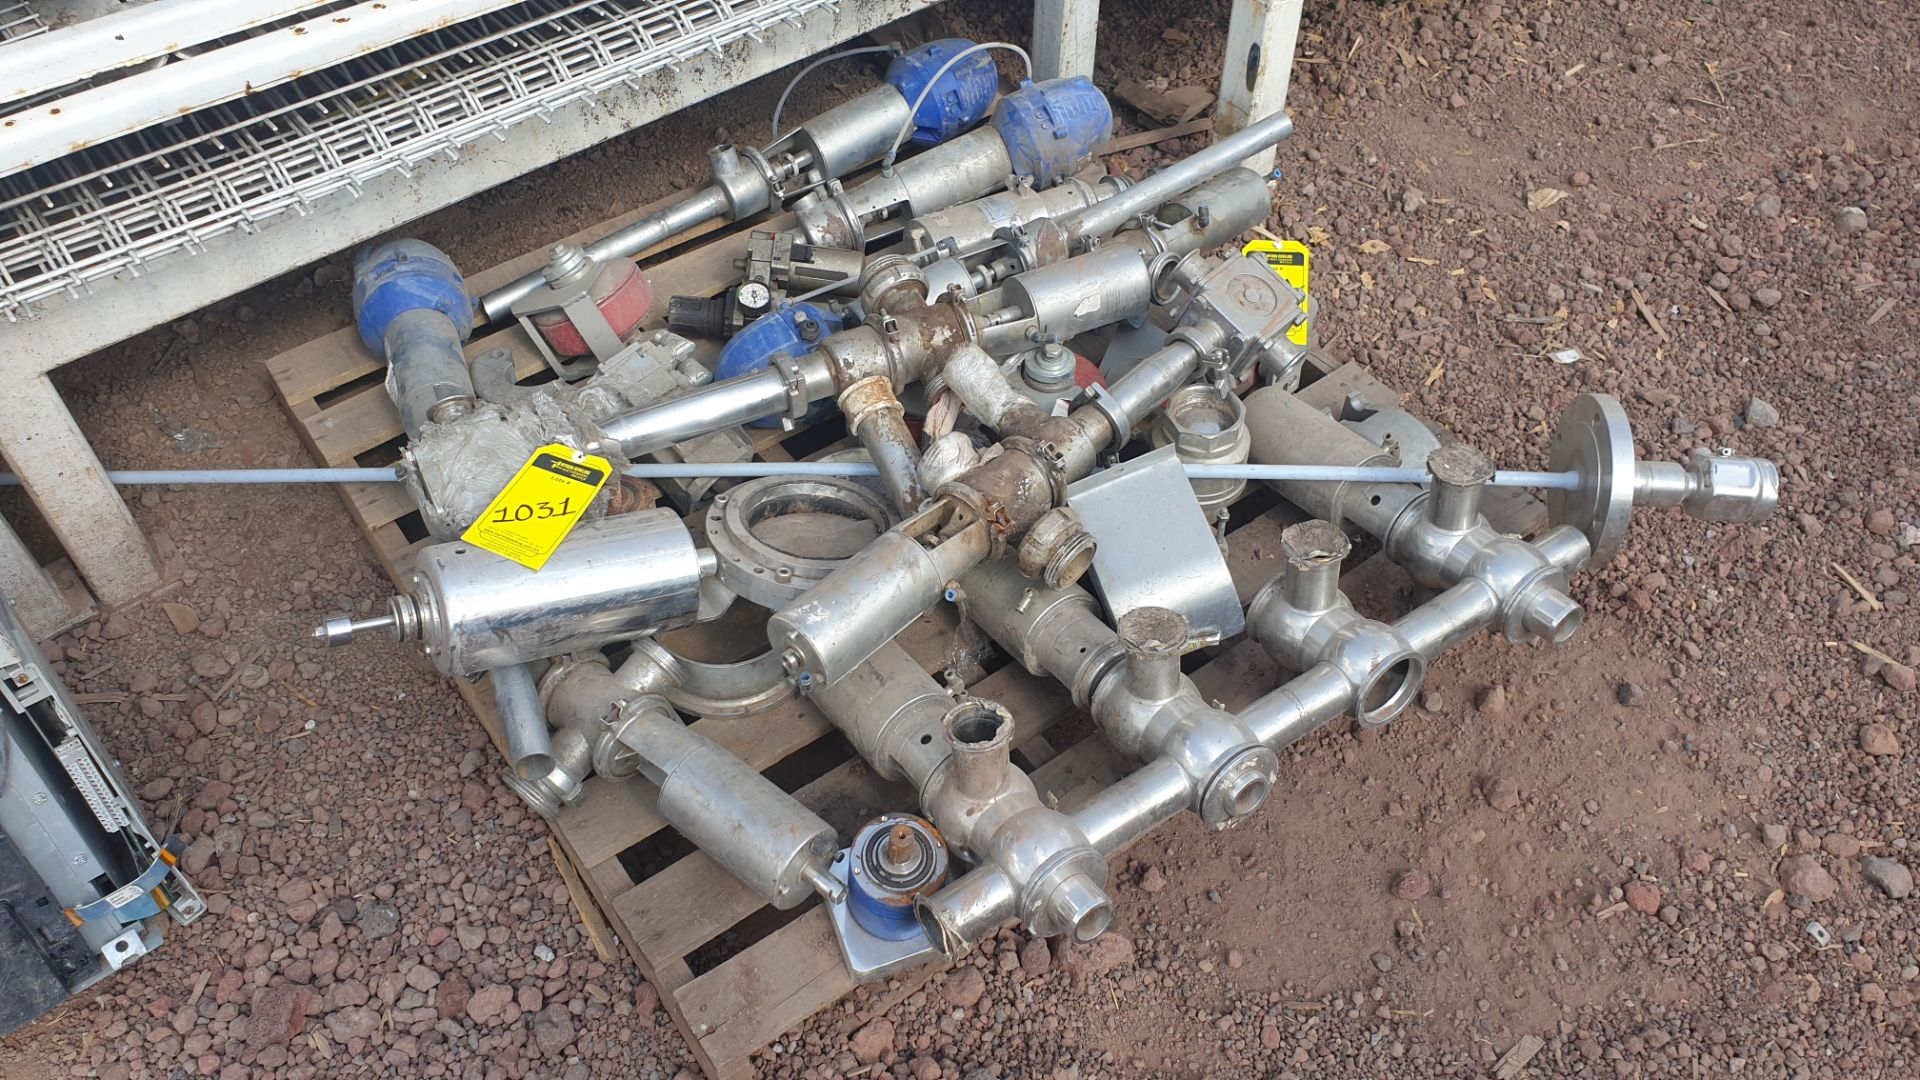 Lot of spare parts, valves, volumetric scales. Please inspect - Image 4 of 8